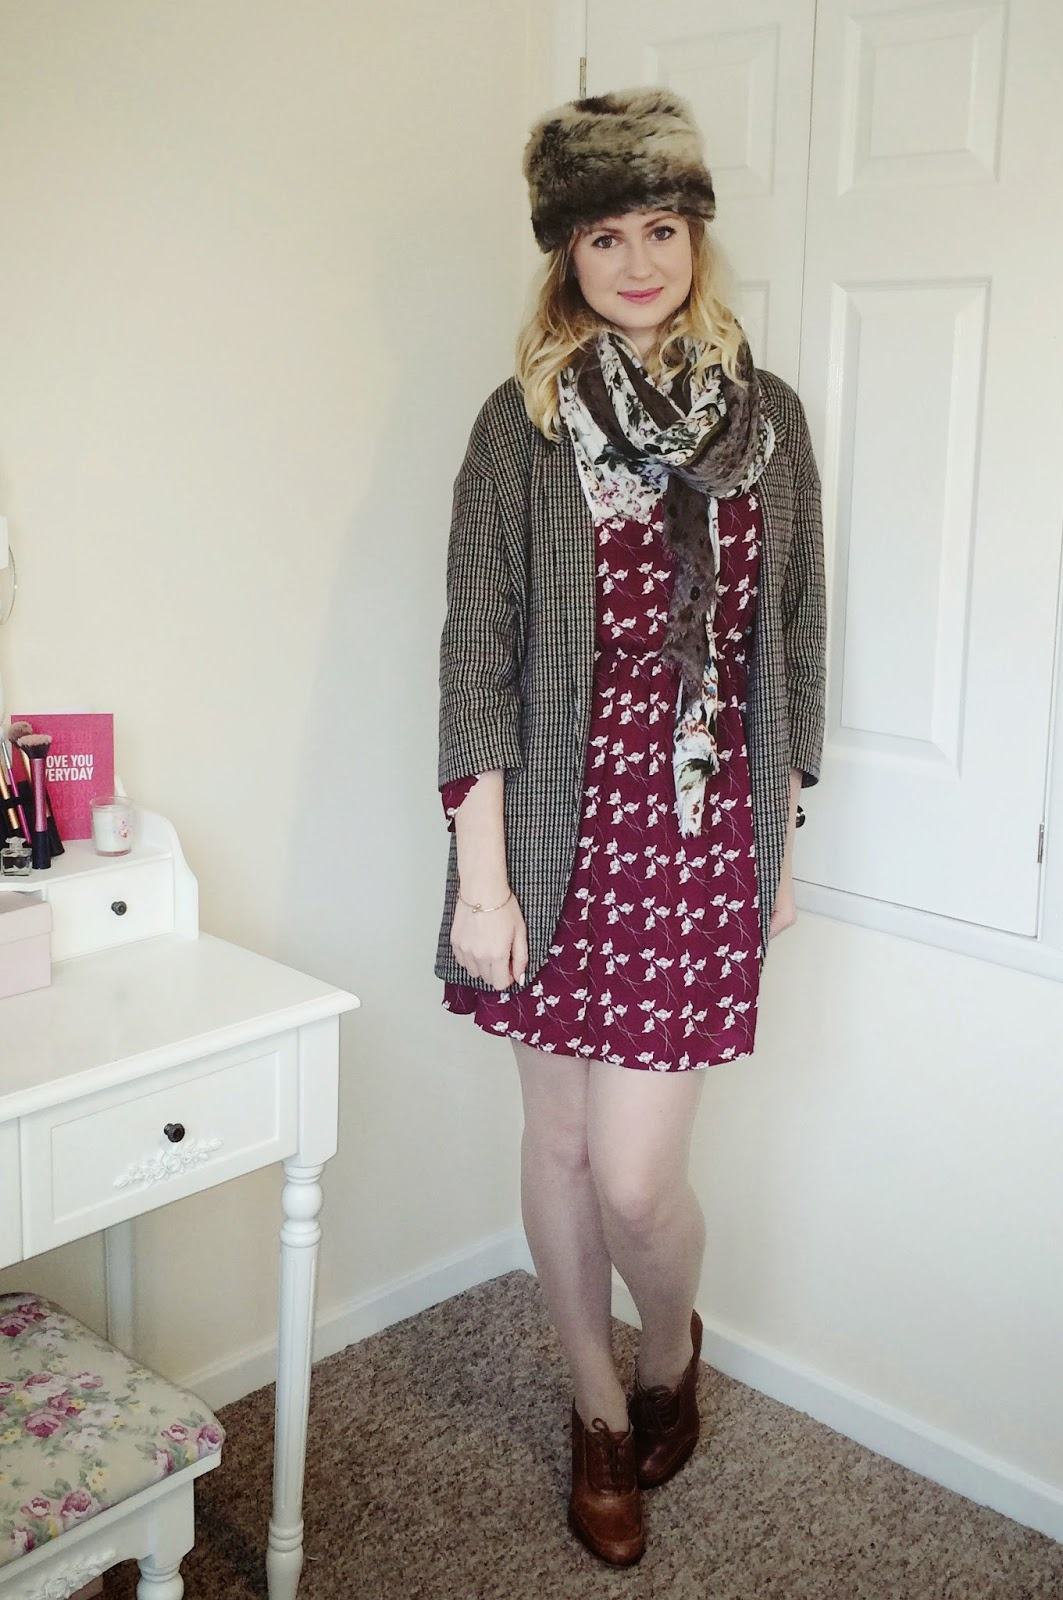 FashionFake, fashion bloggers, UK fashion blog, Sugarhill Boutique dress